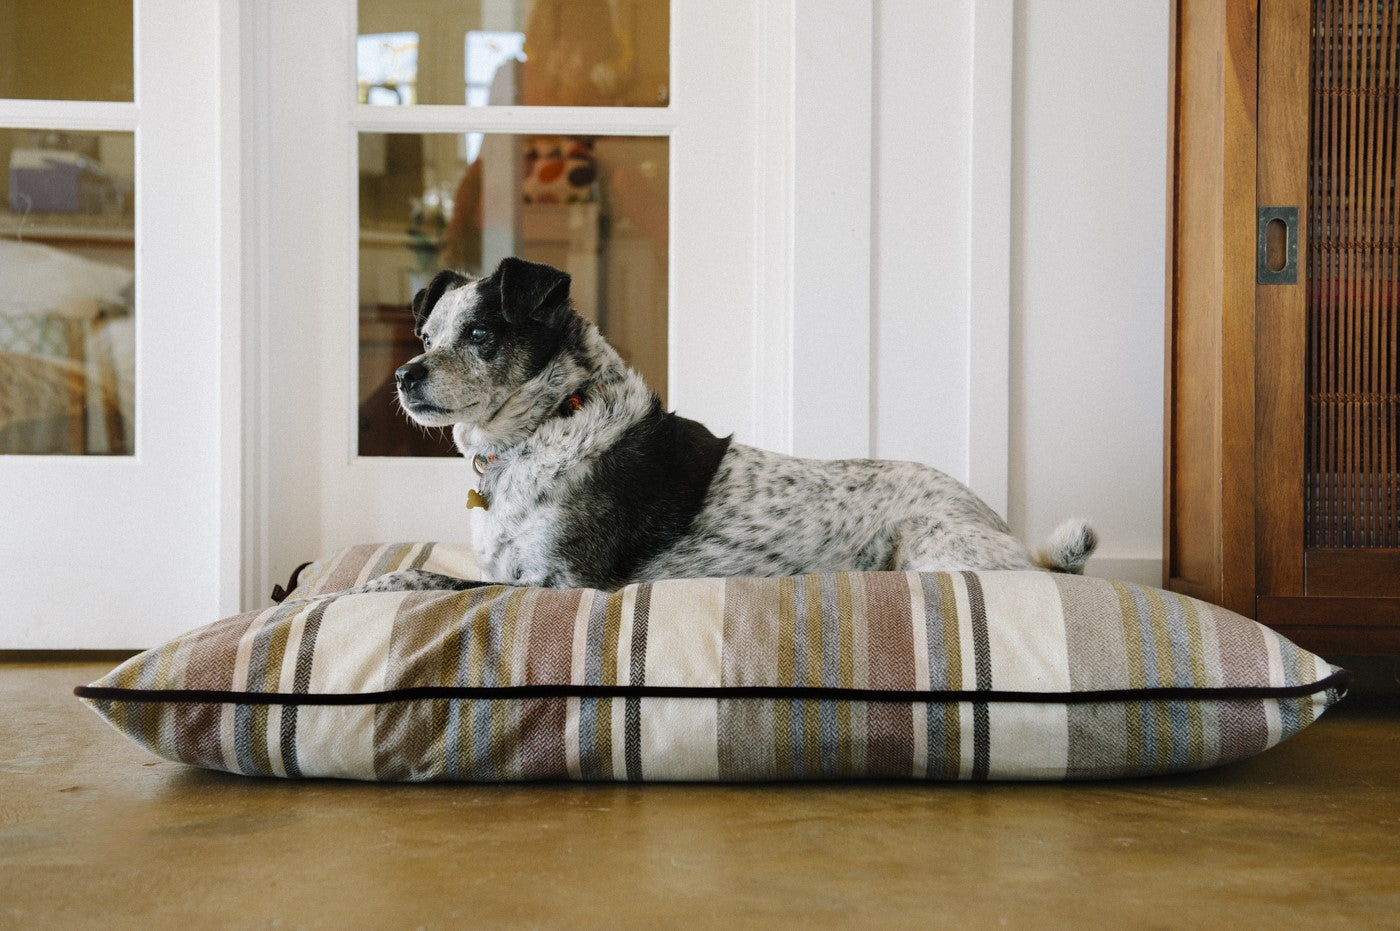 Black and white Fox Terrier,Smooth lies on P.L.A.Y. Seacoast Horizon Pillow bed in front of entrance door